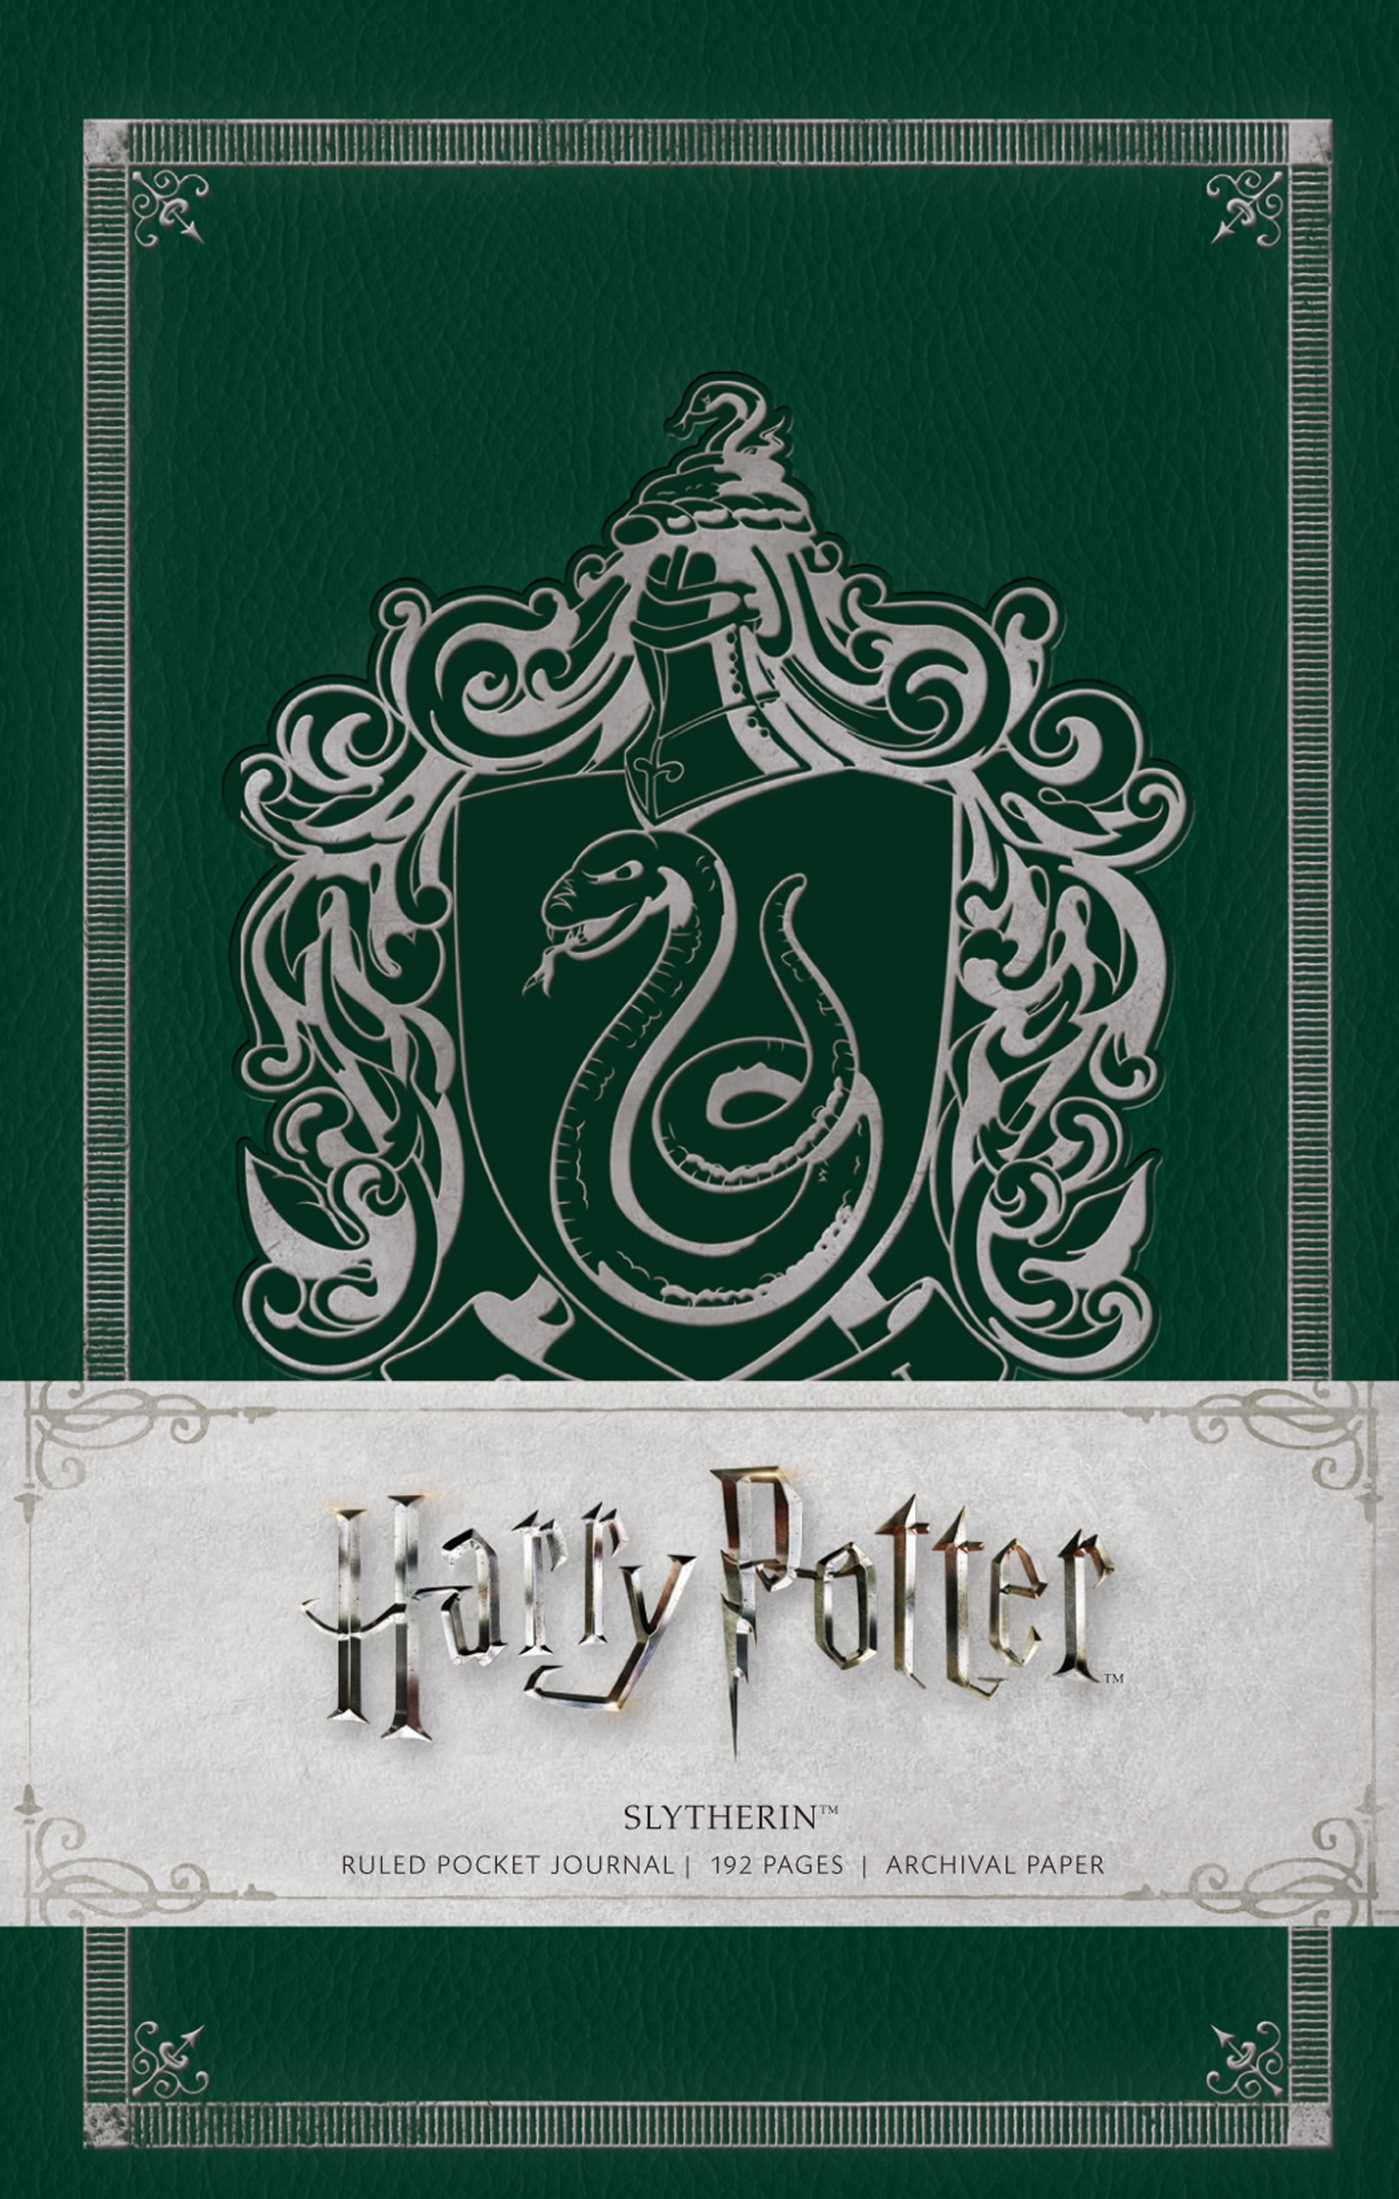 Harry Potter Book Lengths Pages : Harry potter slytherin ruled pocket journal book by